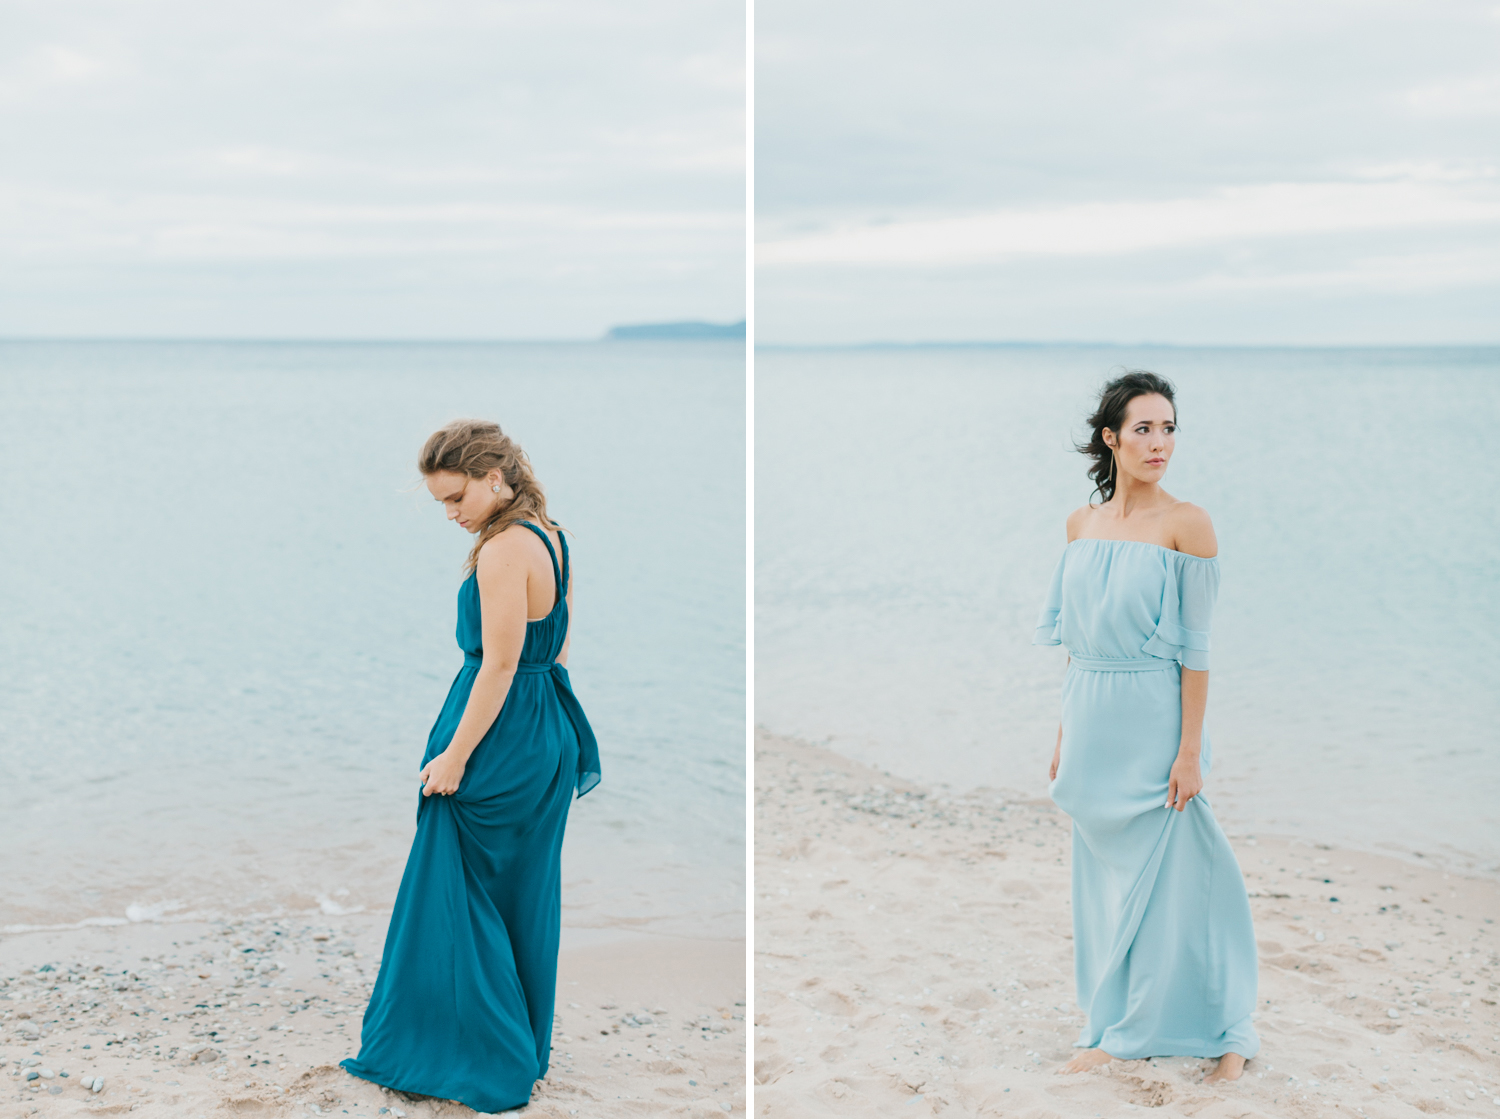 Sleeping Bear Dunes Bridal Portraits Wedding Photographer Mae Stier-027.jpg